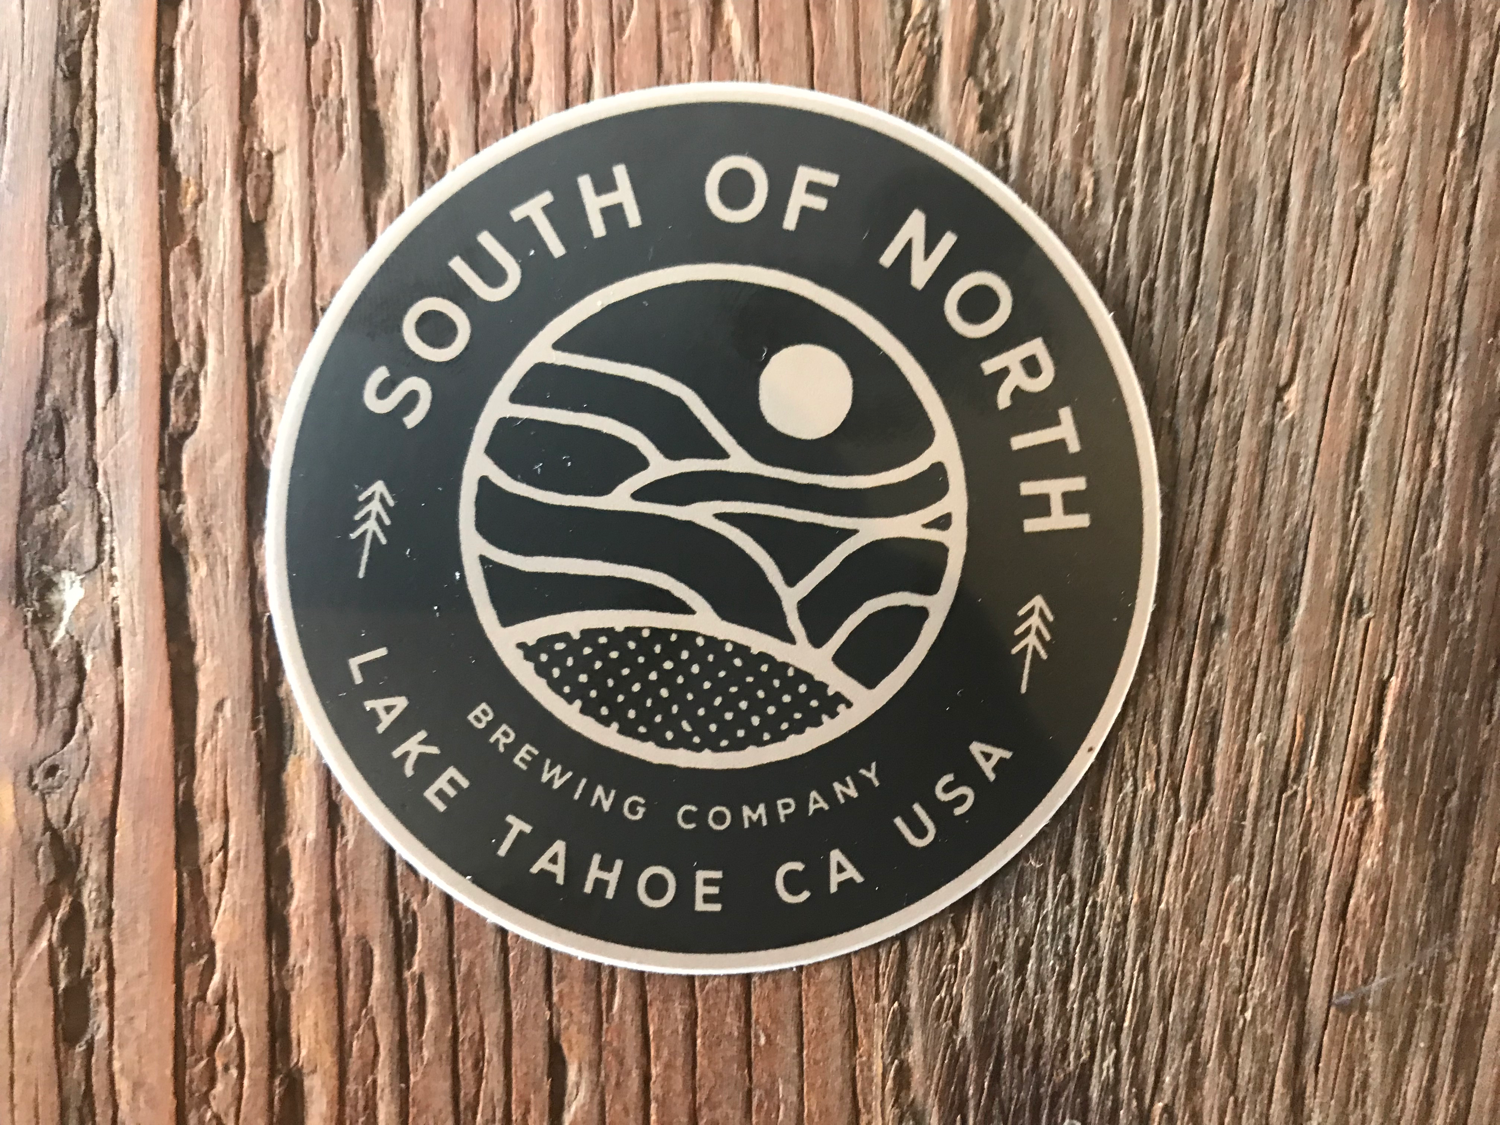 South of North Logo